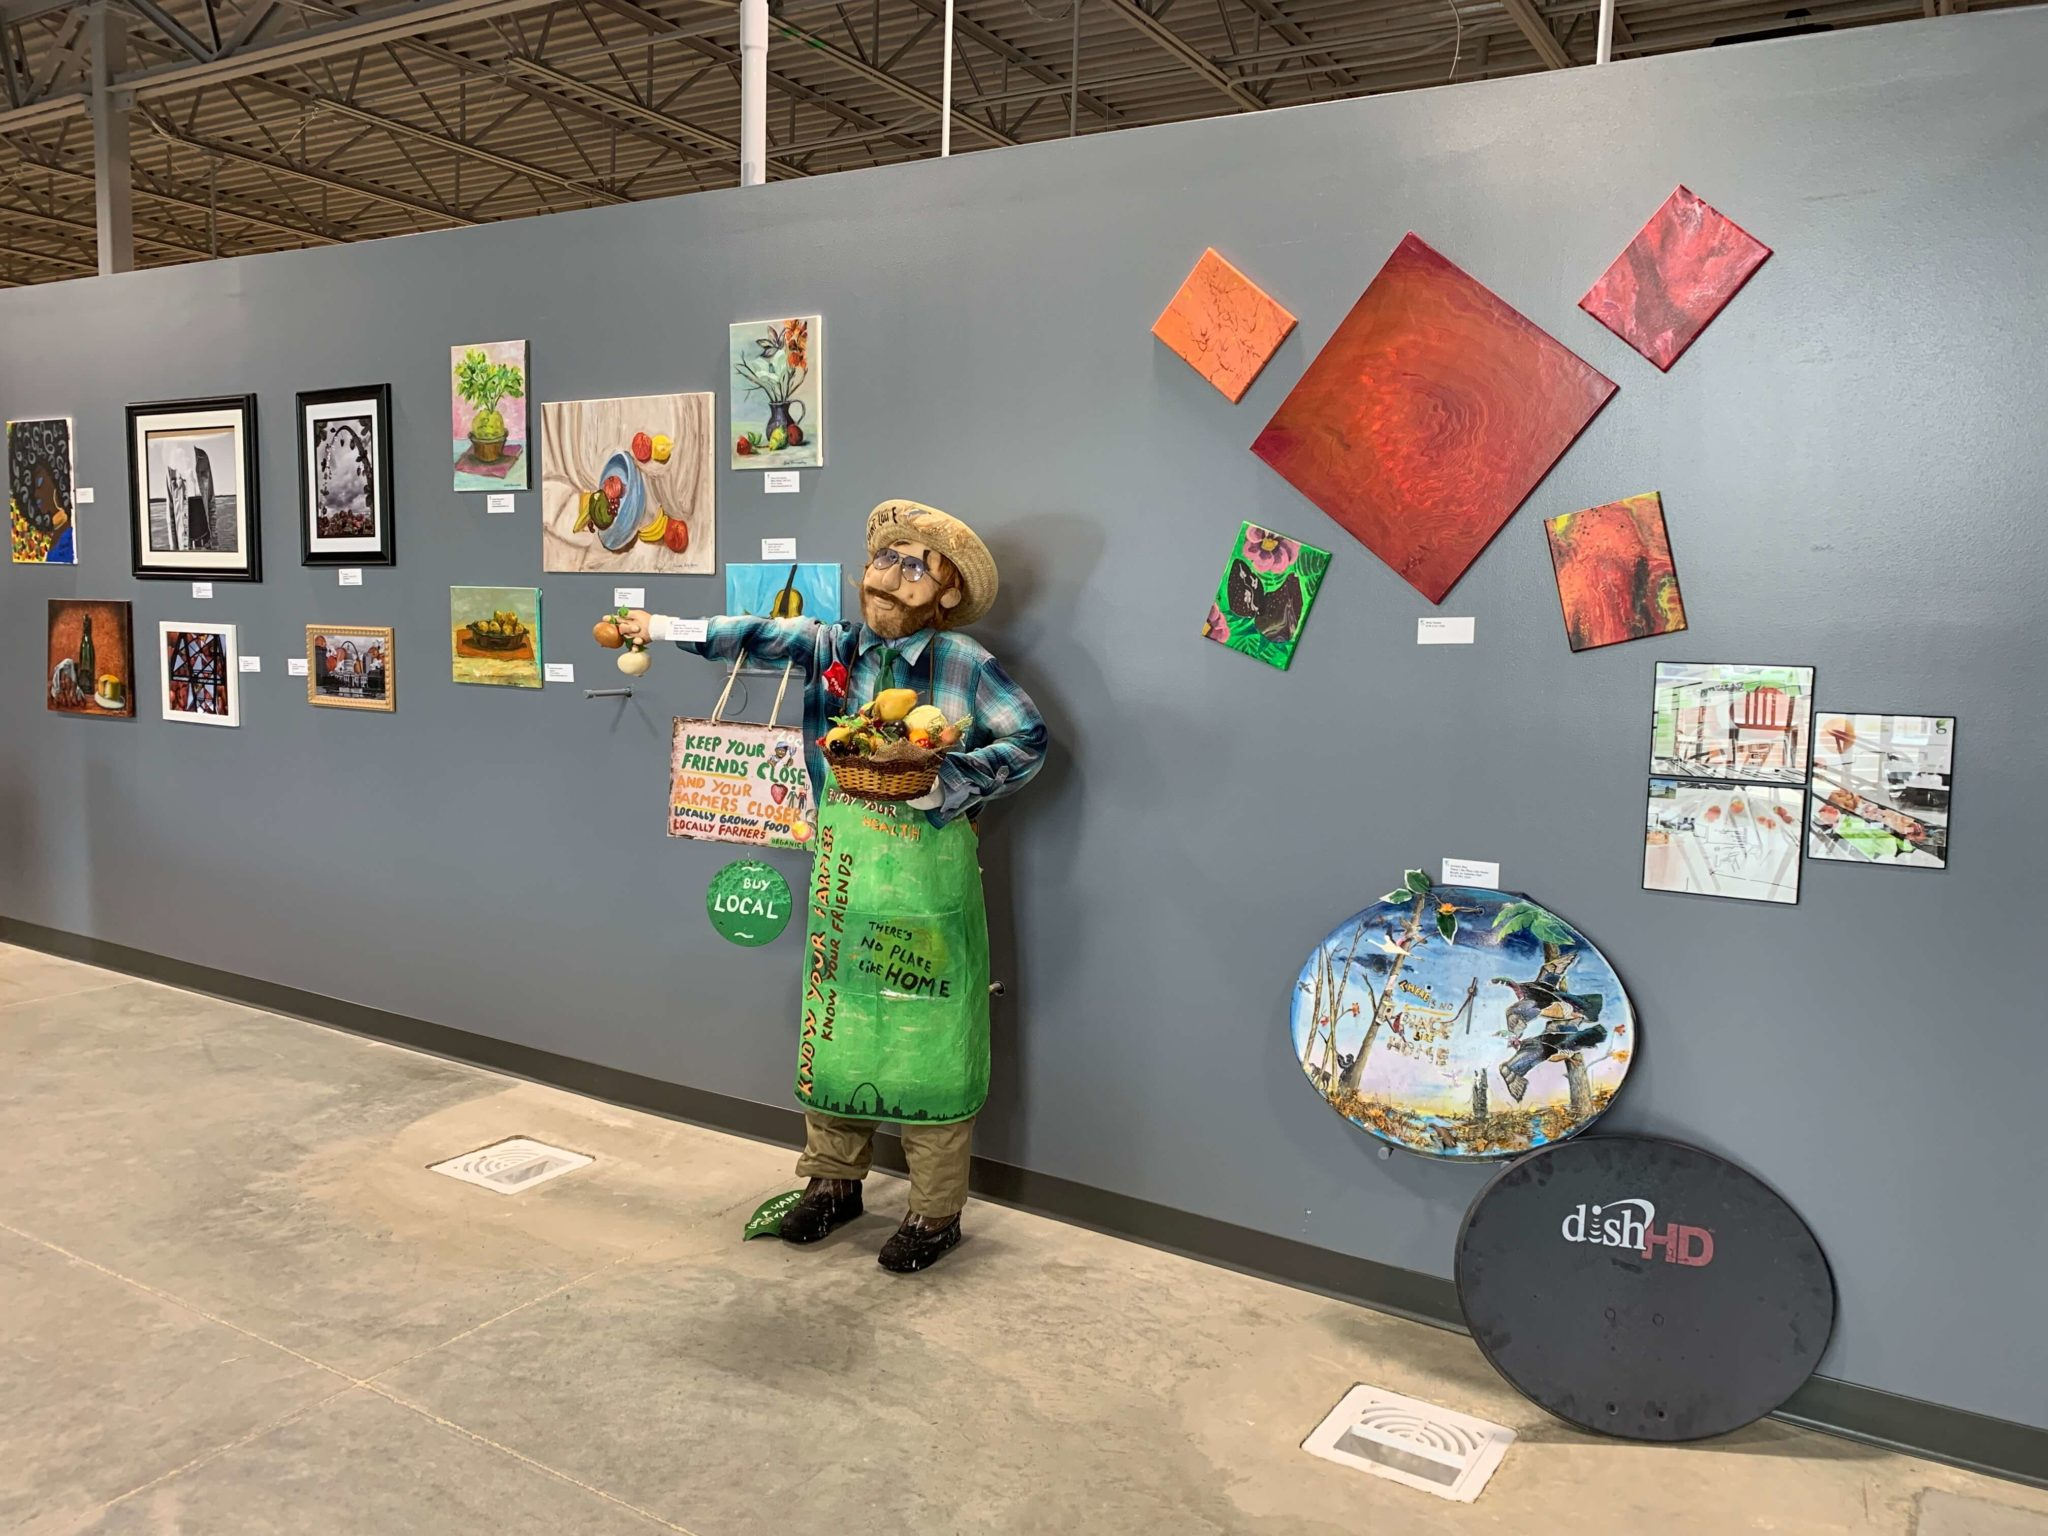 ... on June 4 which officially opened for the month's local artists and featured in-season foods (strawberries and peaches). Artists from North St. Louis ...